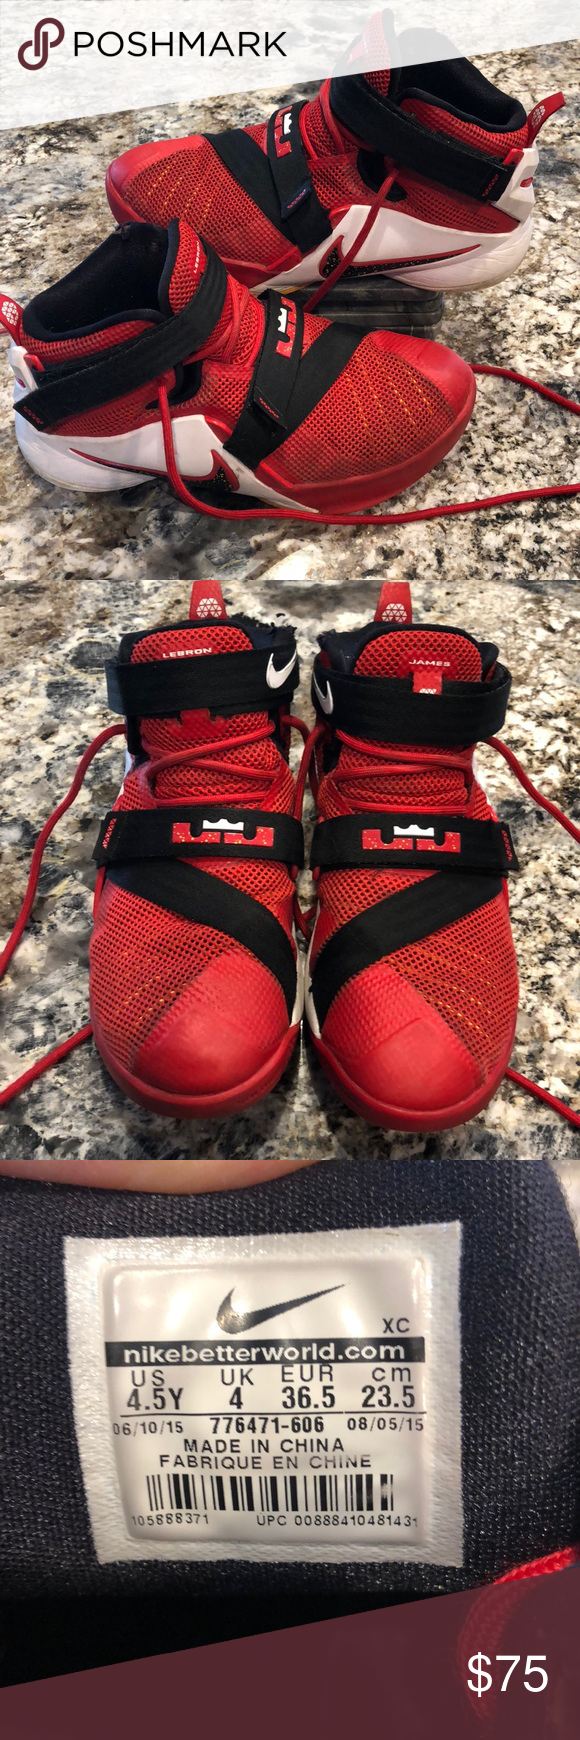 5f0b09241e63 Nike LeBron - Soldier 9 LeBron James basketball sneakers. Soldier 9. Red  with black